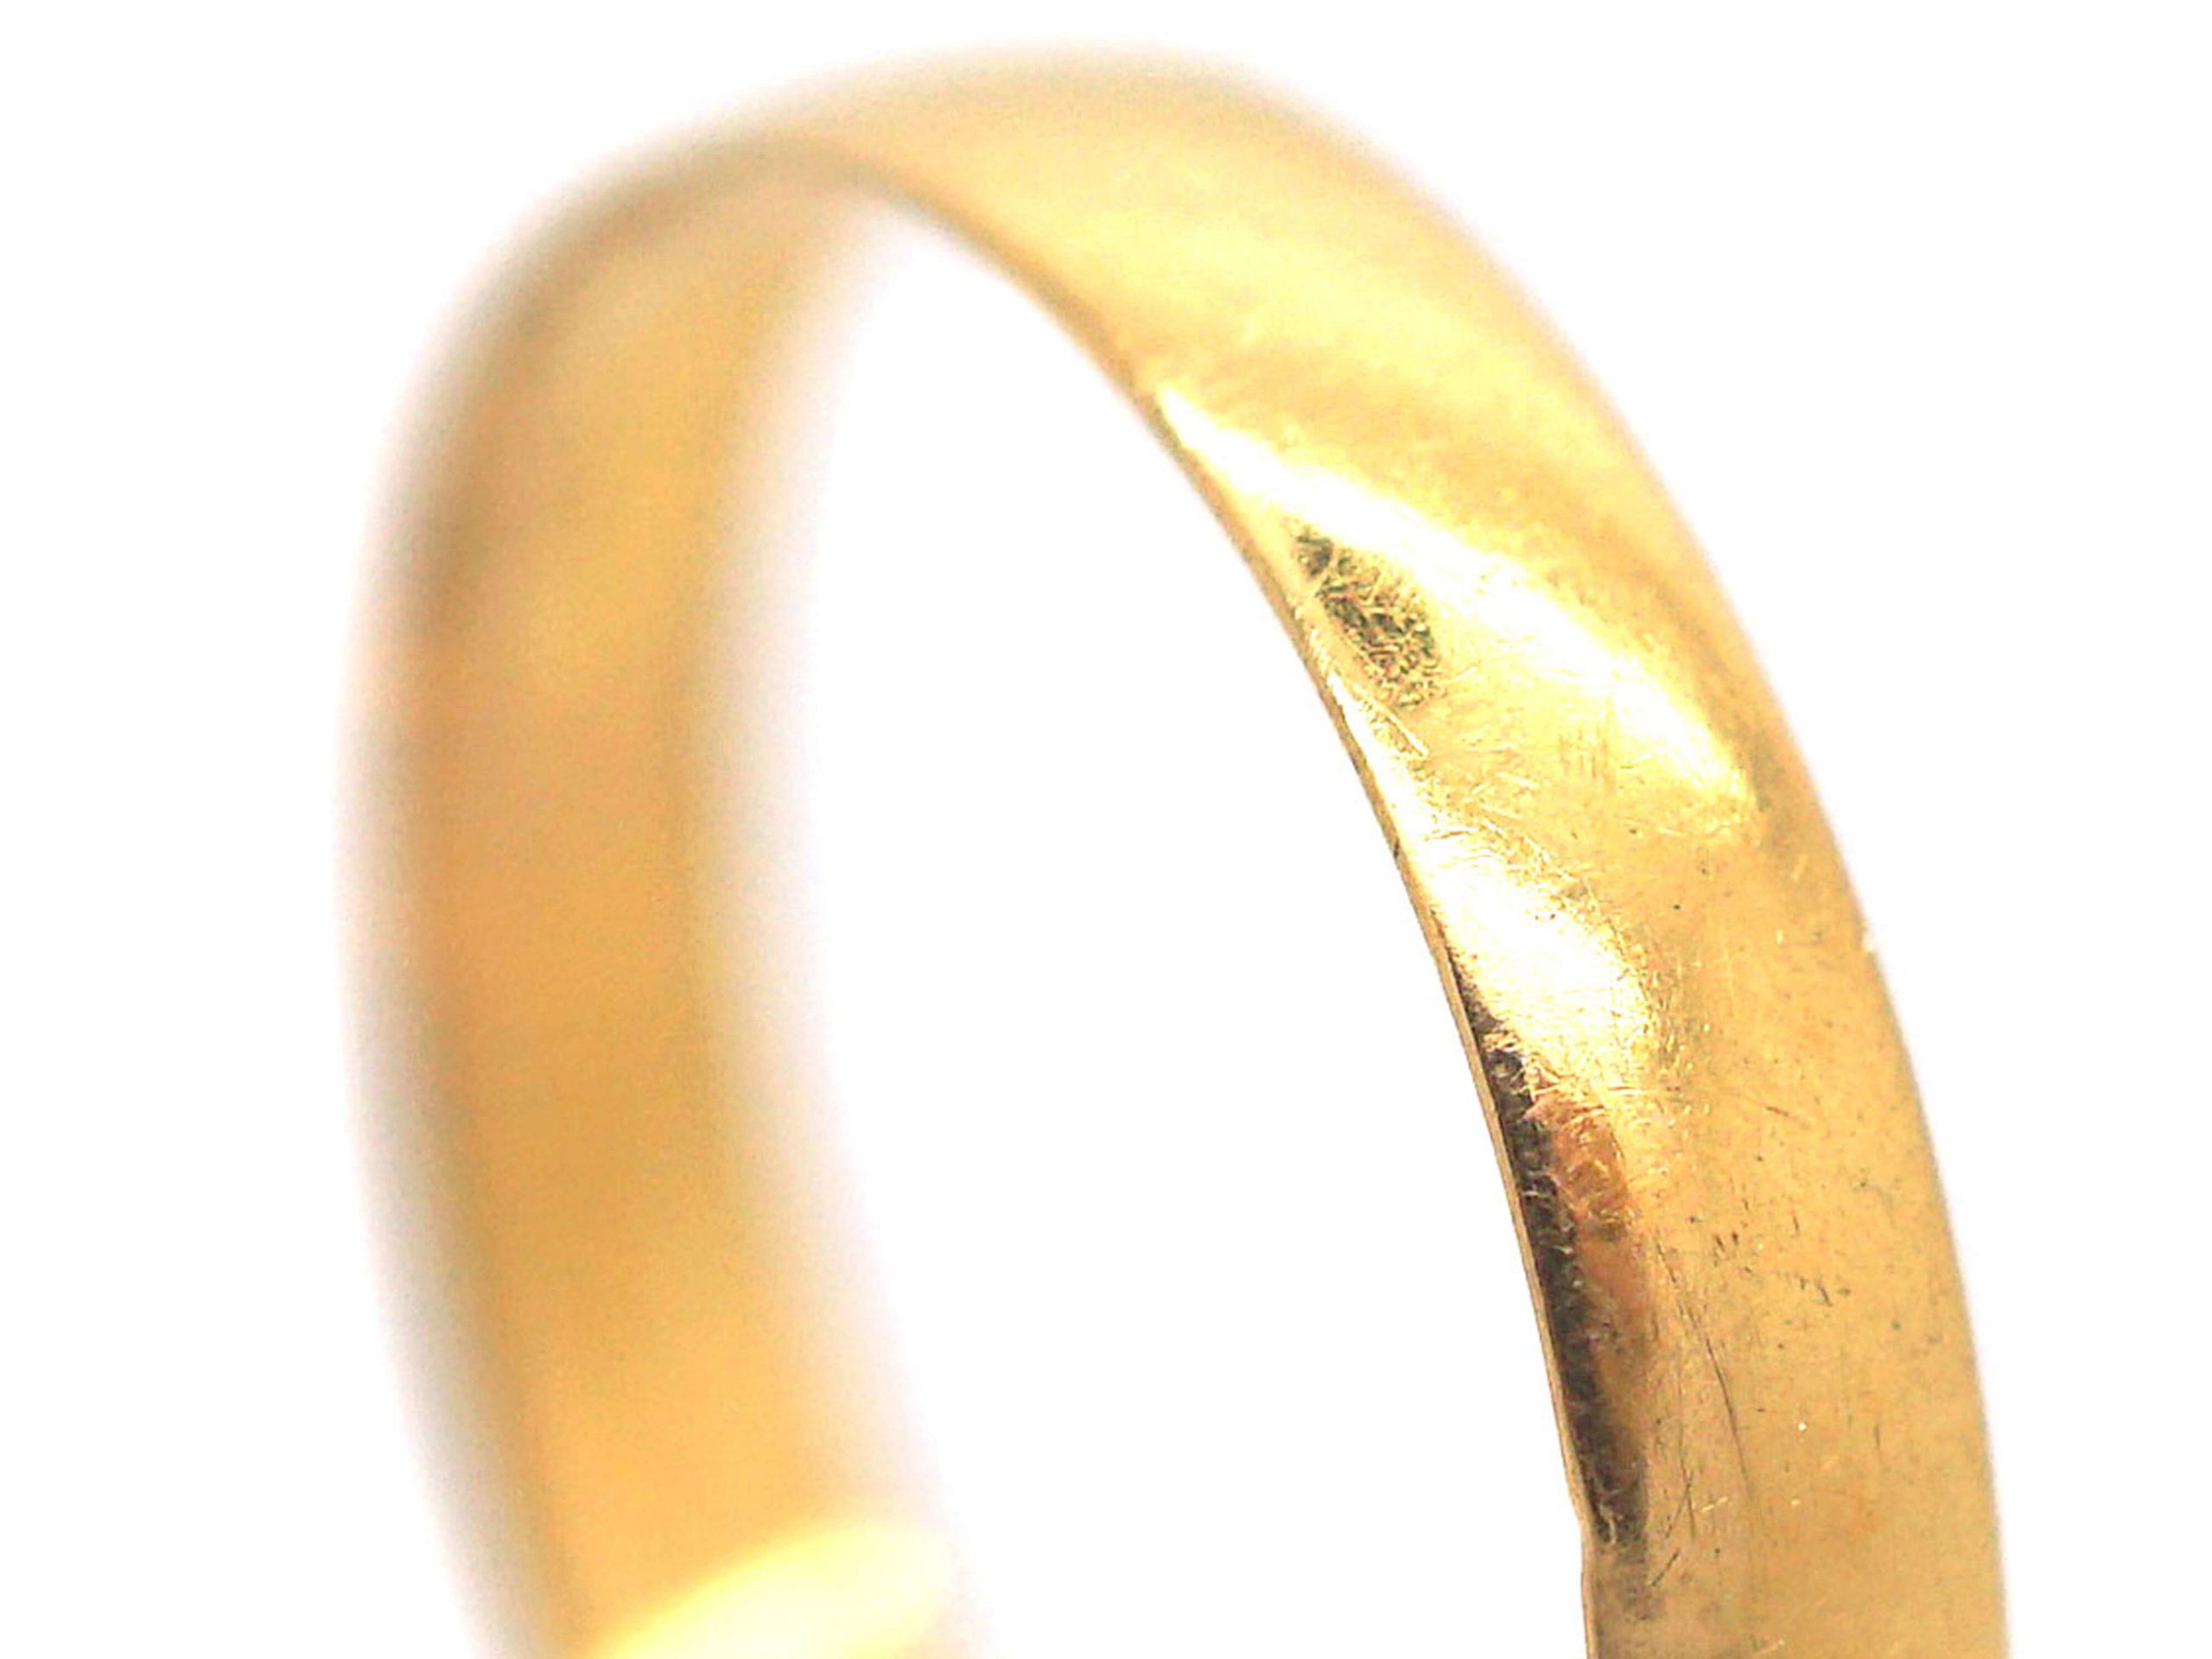 Victorian 22ct Gold Wedding Ring made in 1889